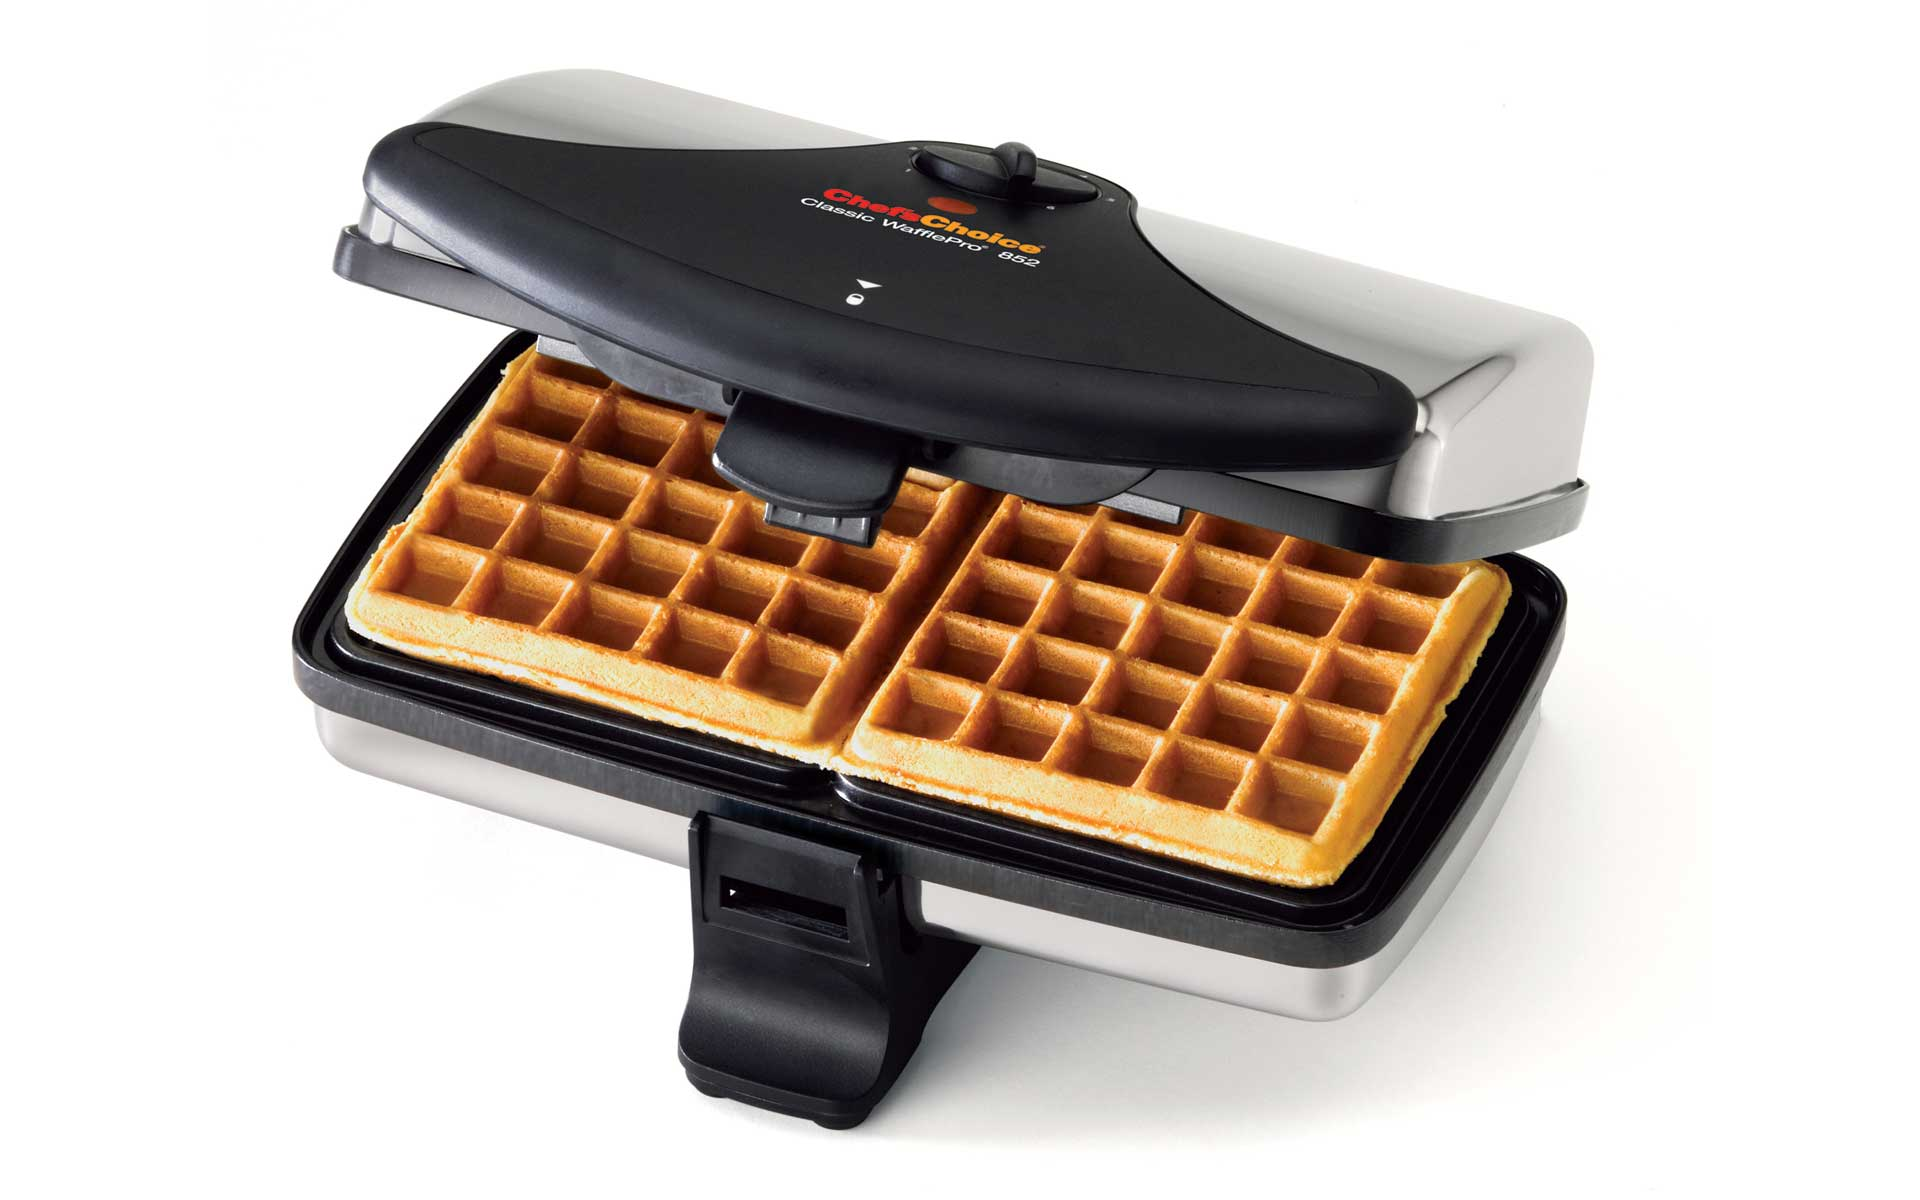 Incredible How To Clean A Waffle Maker Steps To Follow To Have A Experiencewith Your Waffle Maker Village Bakery Waffle Maker Belgian Waffle Iron Irons Sale Maker houzz-03 Texas Waffle Maker